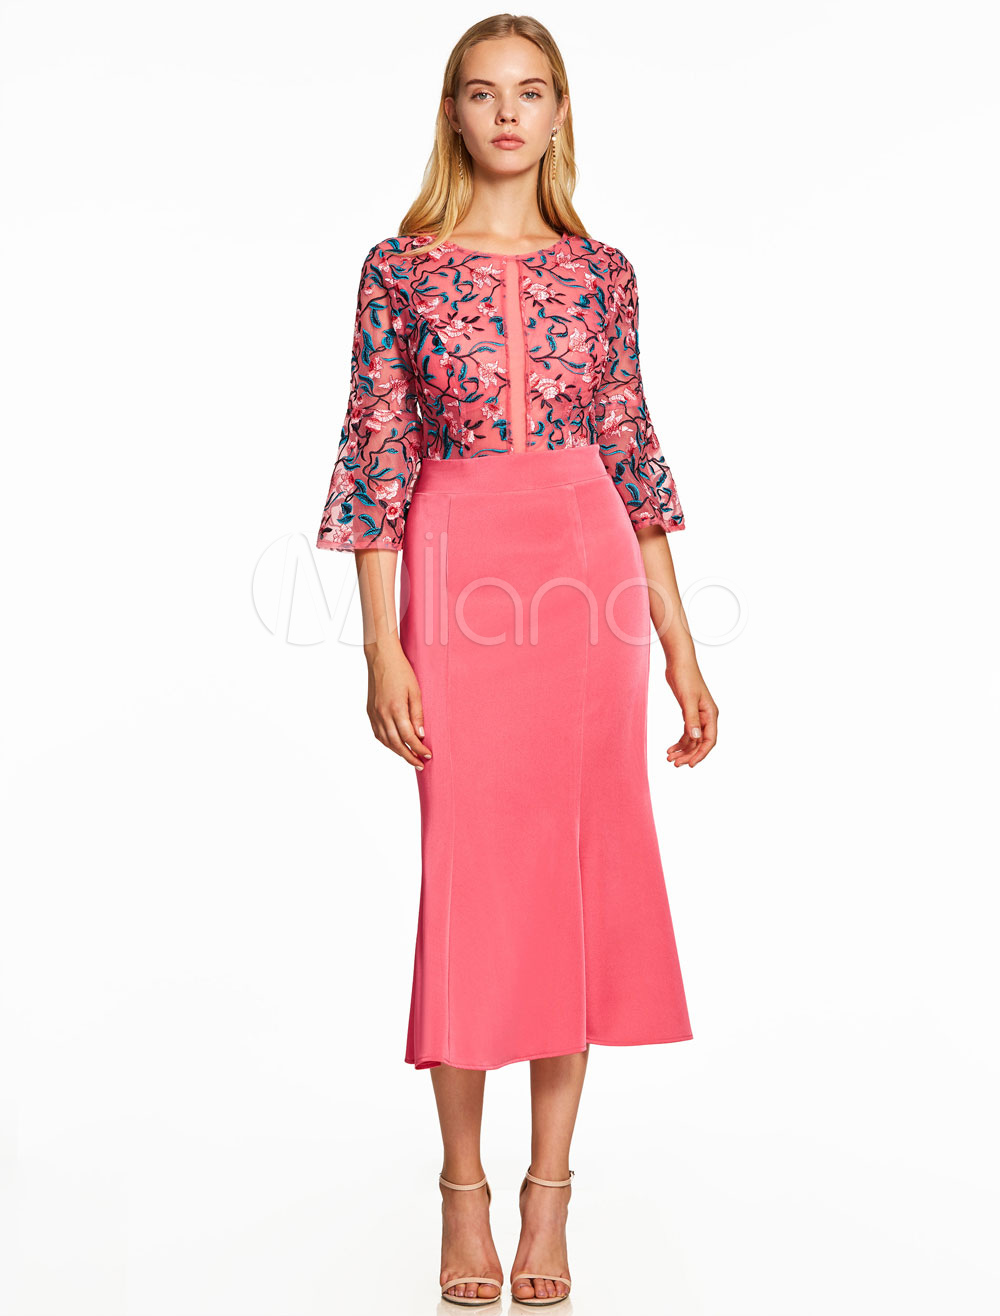 Buy Coral Cocktail Dresses Sheath Lace Satin Long Sleeve Tea Length Round Neck Short Party Dresses for $87.99 in Milanoo store